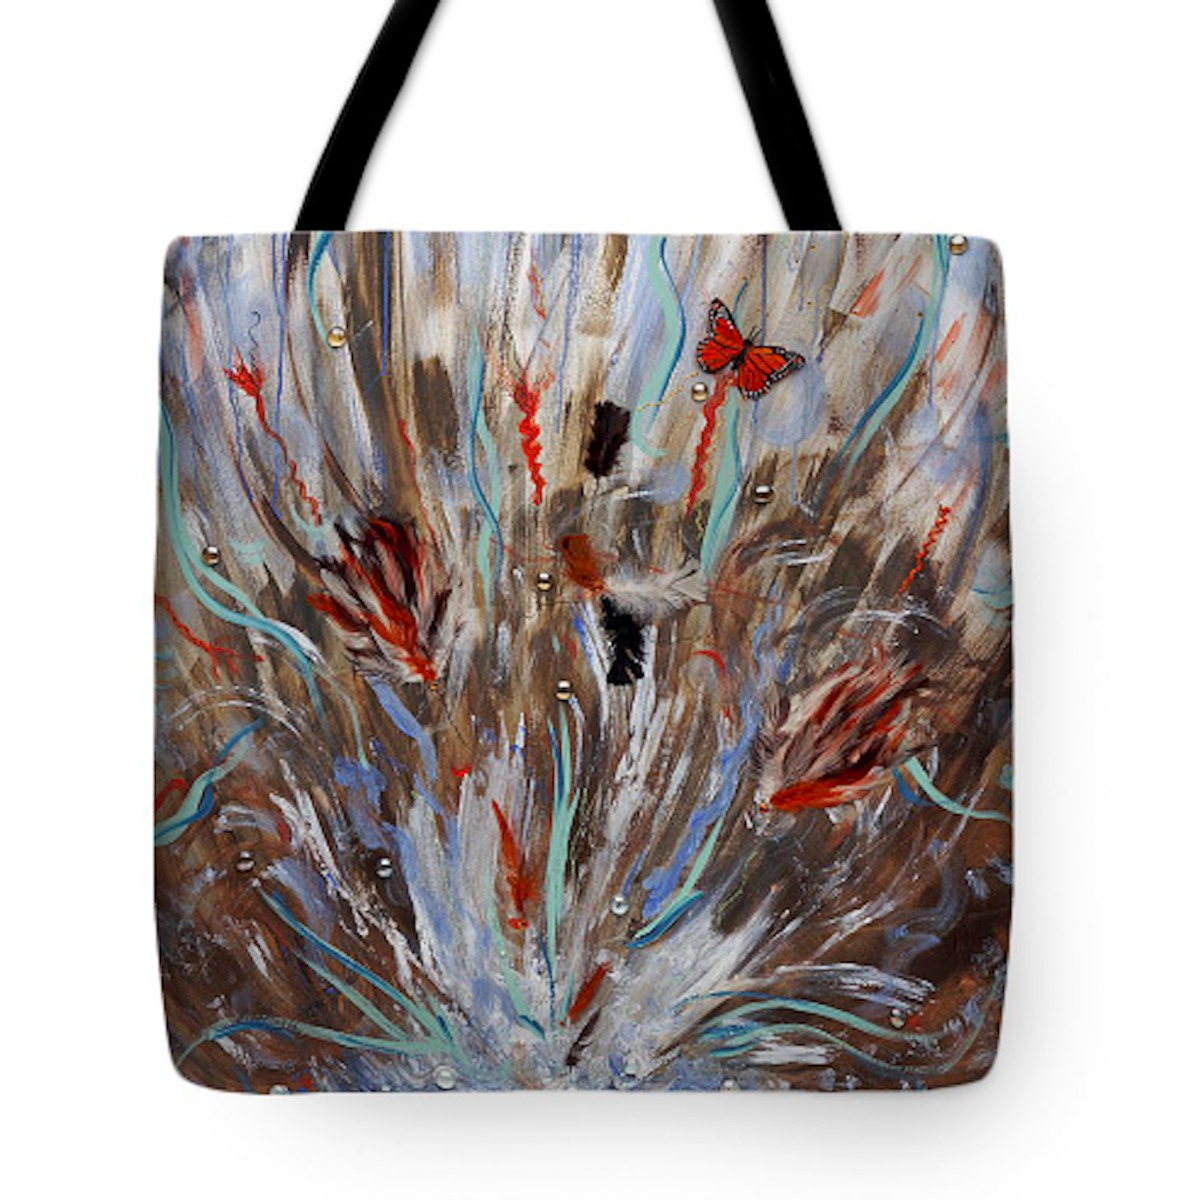 Playing with Fear Tote Bag (large view)